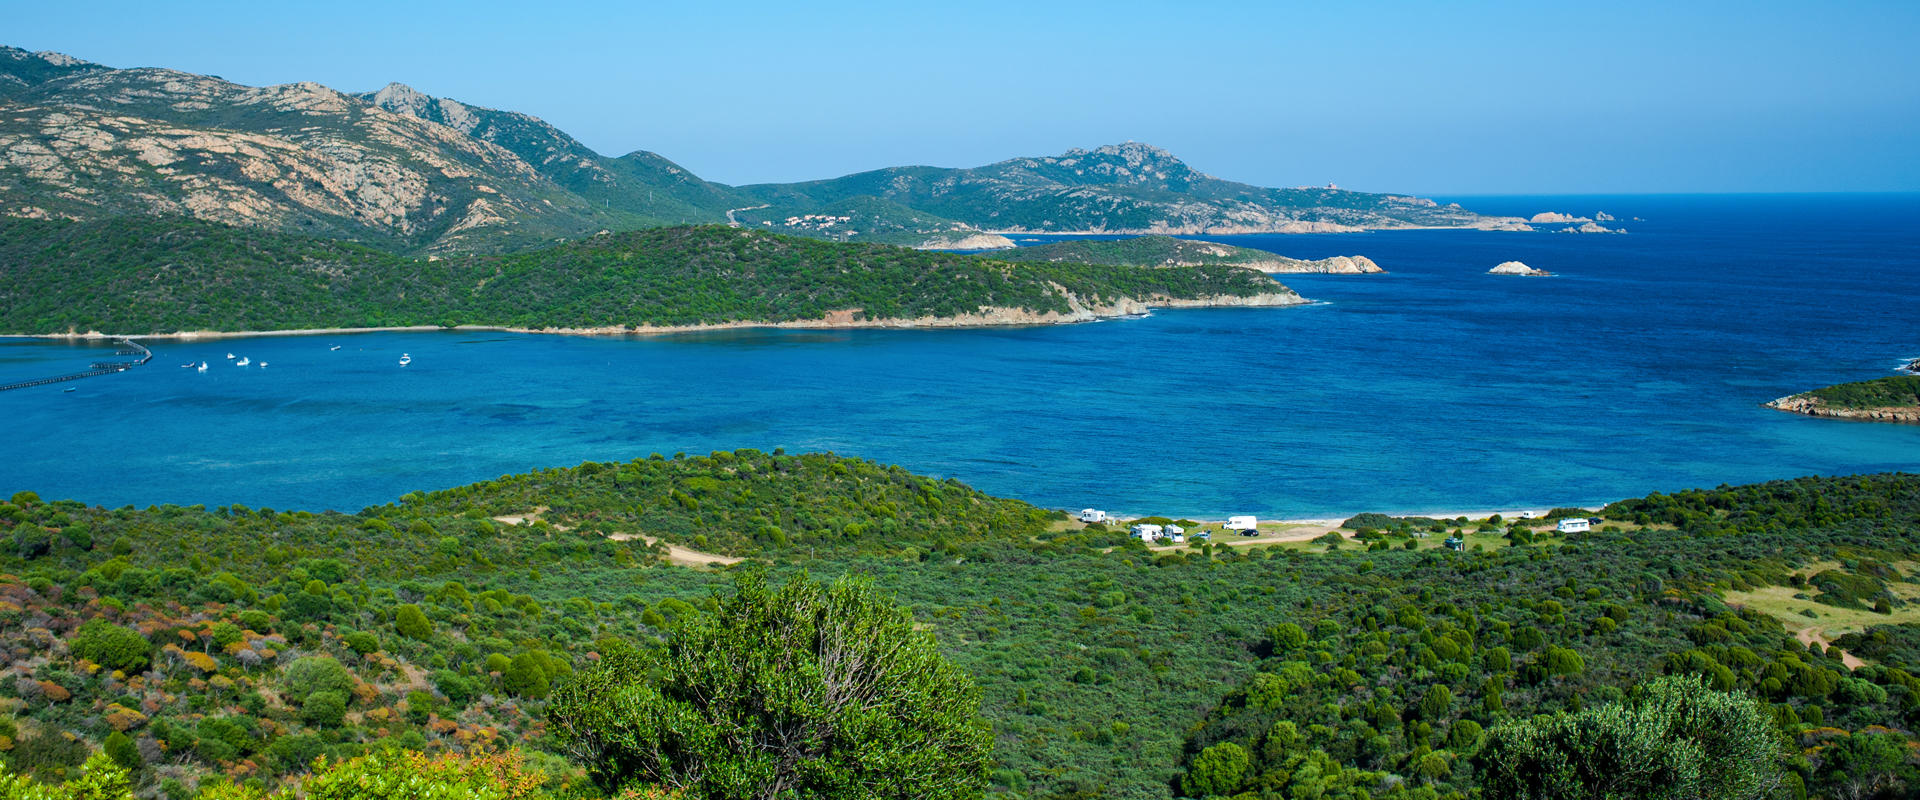 The Grantourismo Travel Guide to Sardinia, Italy. Copyright © 2017 Terence Carter / Grantourismo. All Rights Reserved.